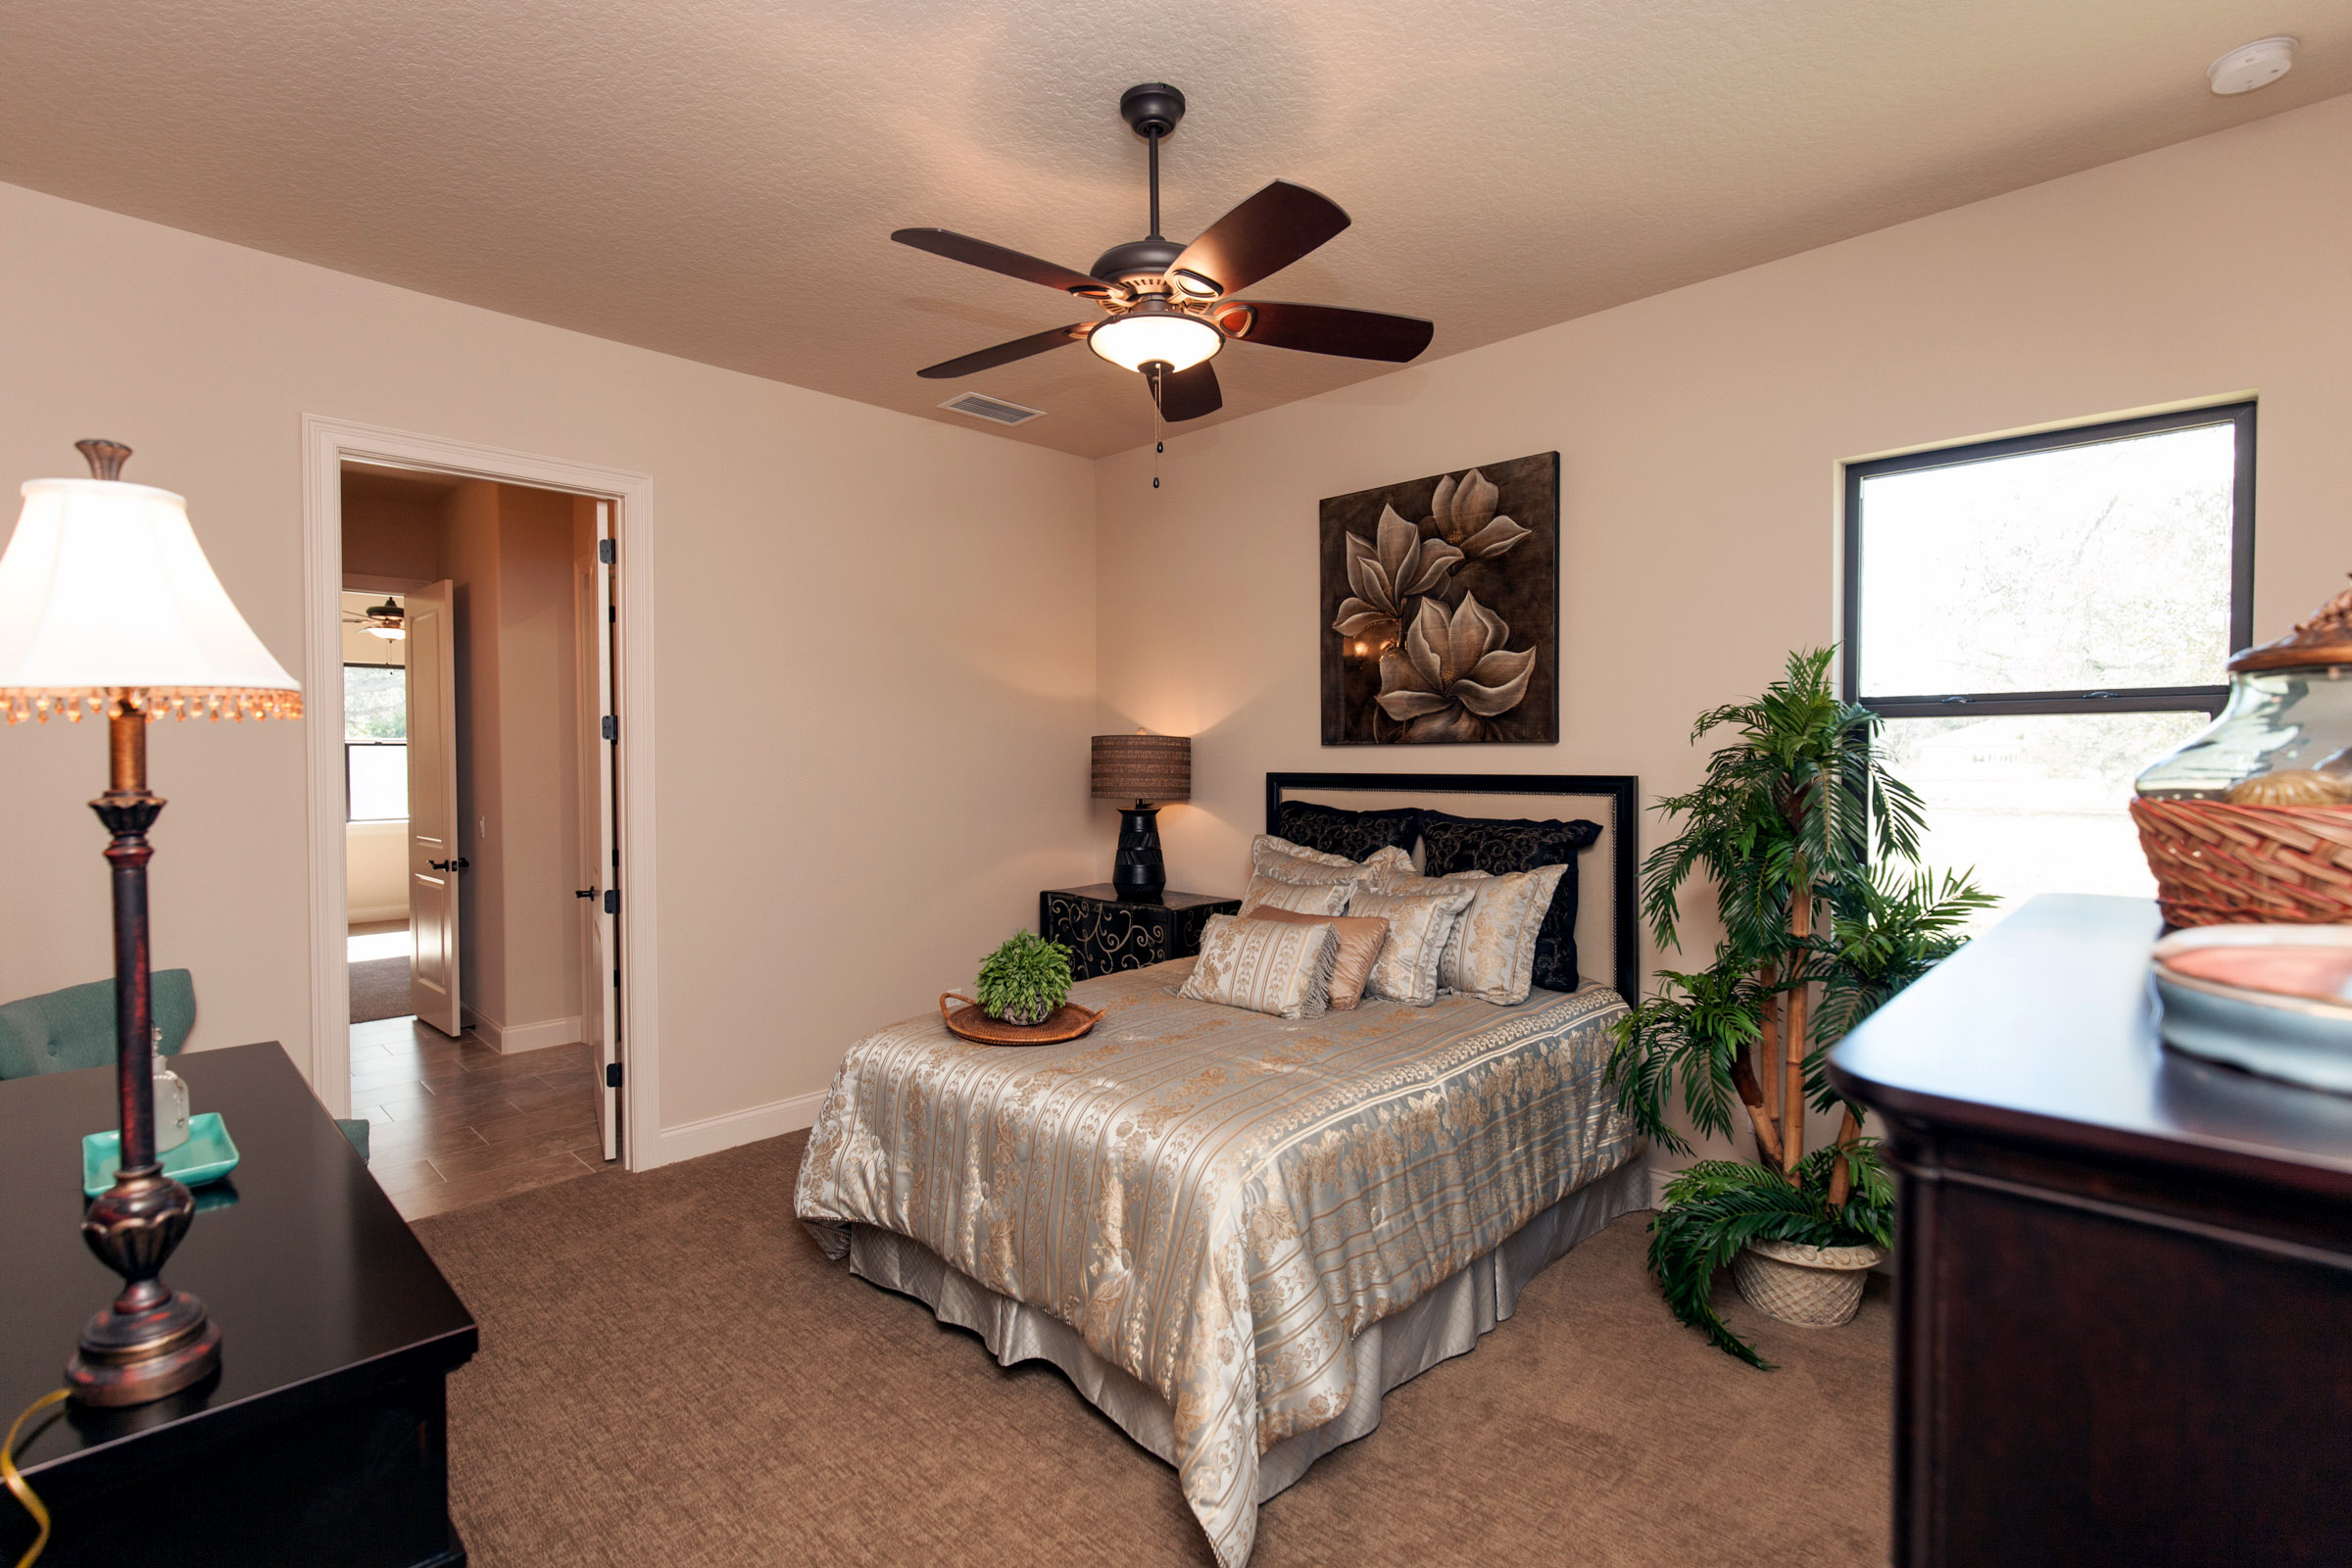 Beige bedroom with silk bedding on a full size bed